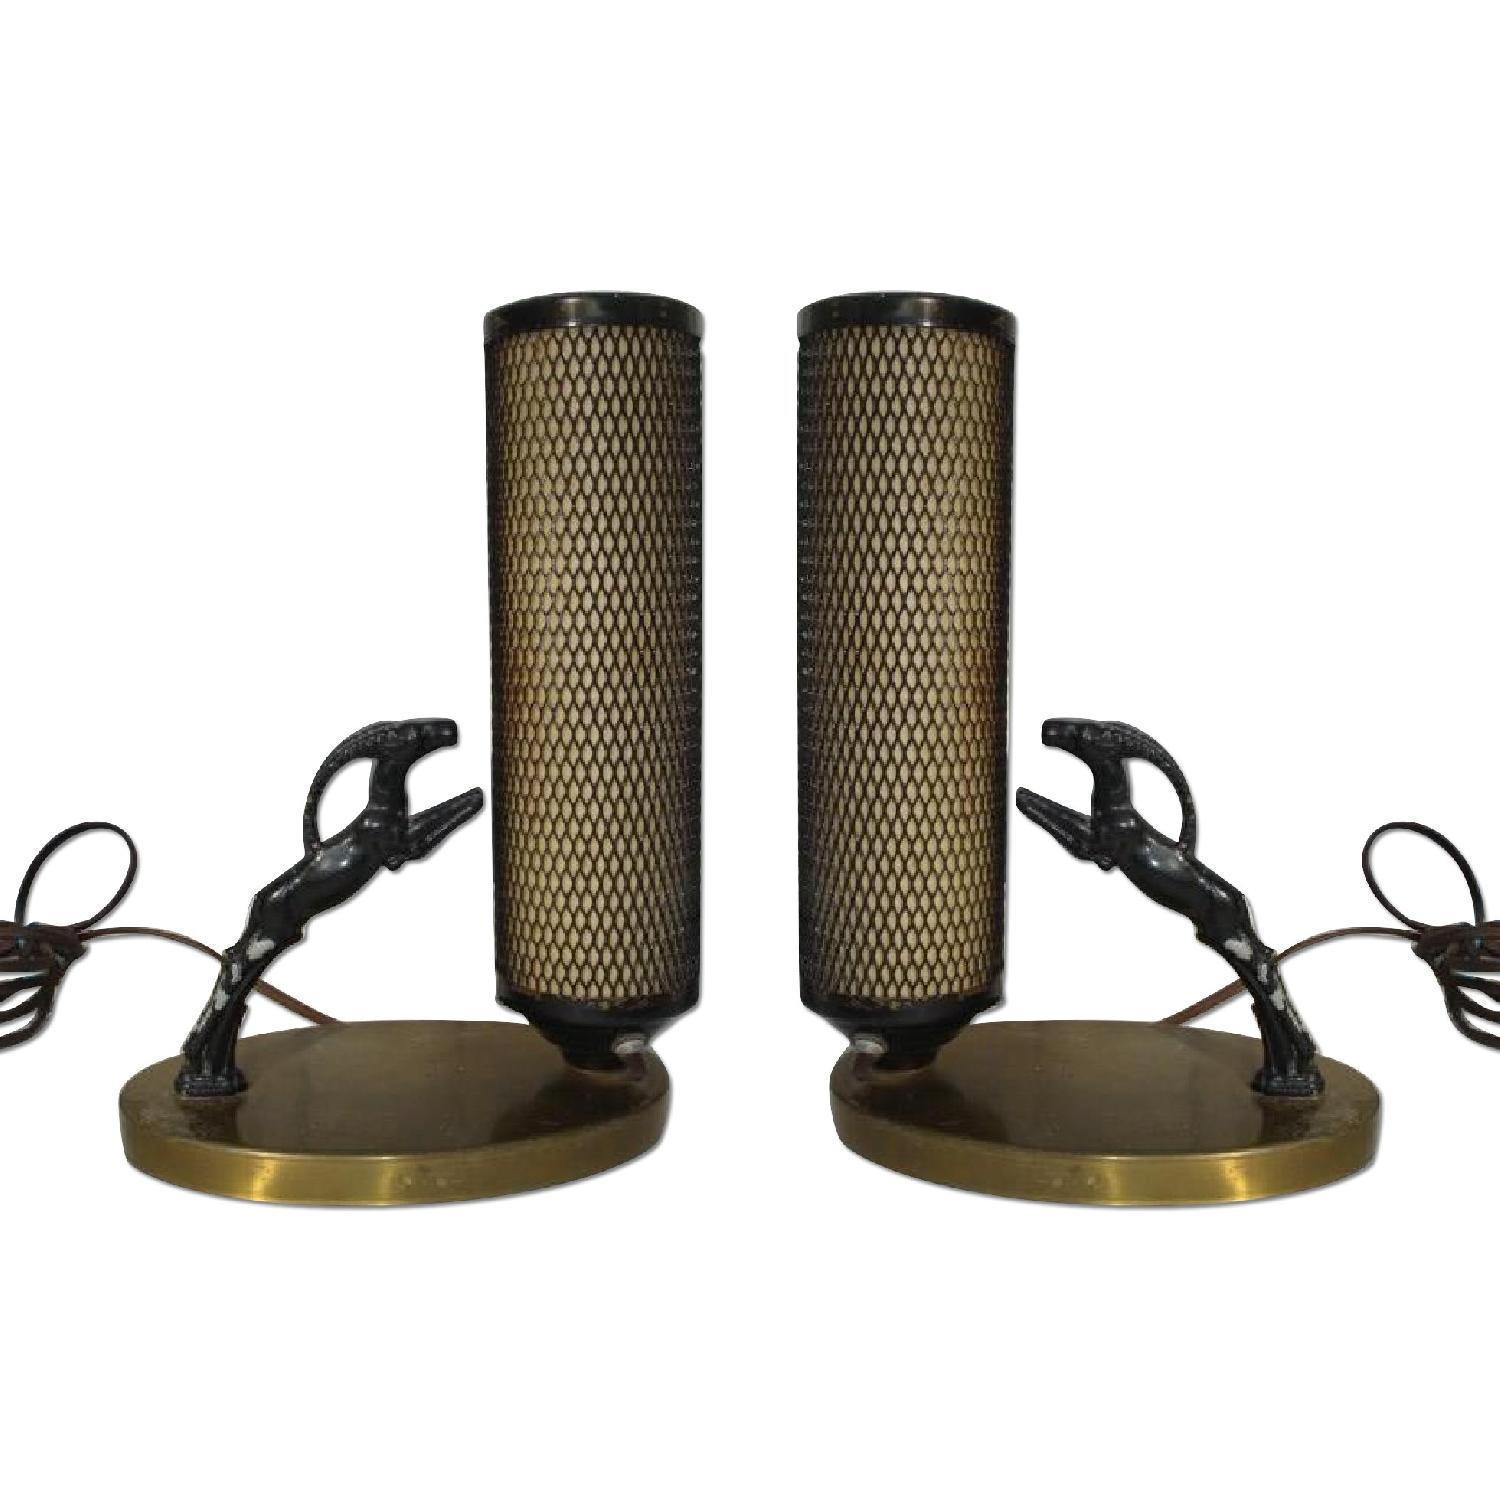 Art Deco Night Stand Lamps - Pair - image-0